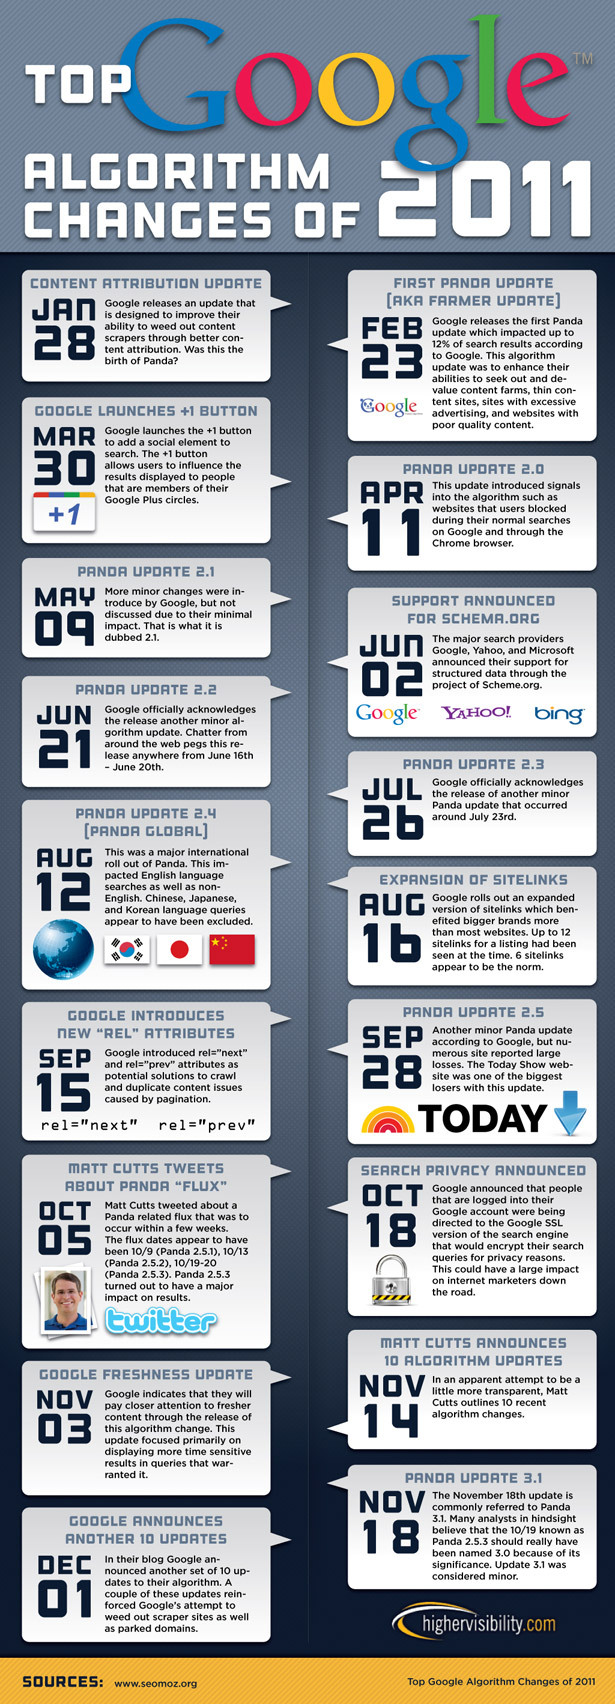 Google-Algorithm-Changes-Of-2011-infographic